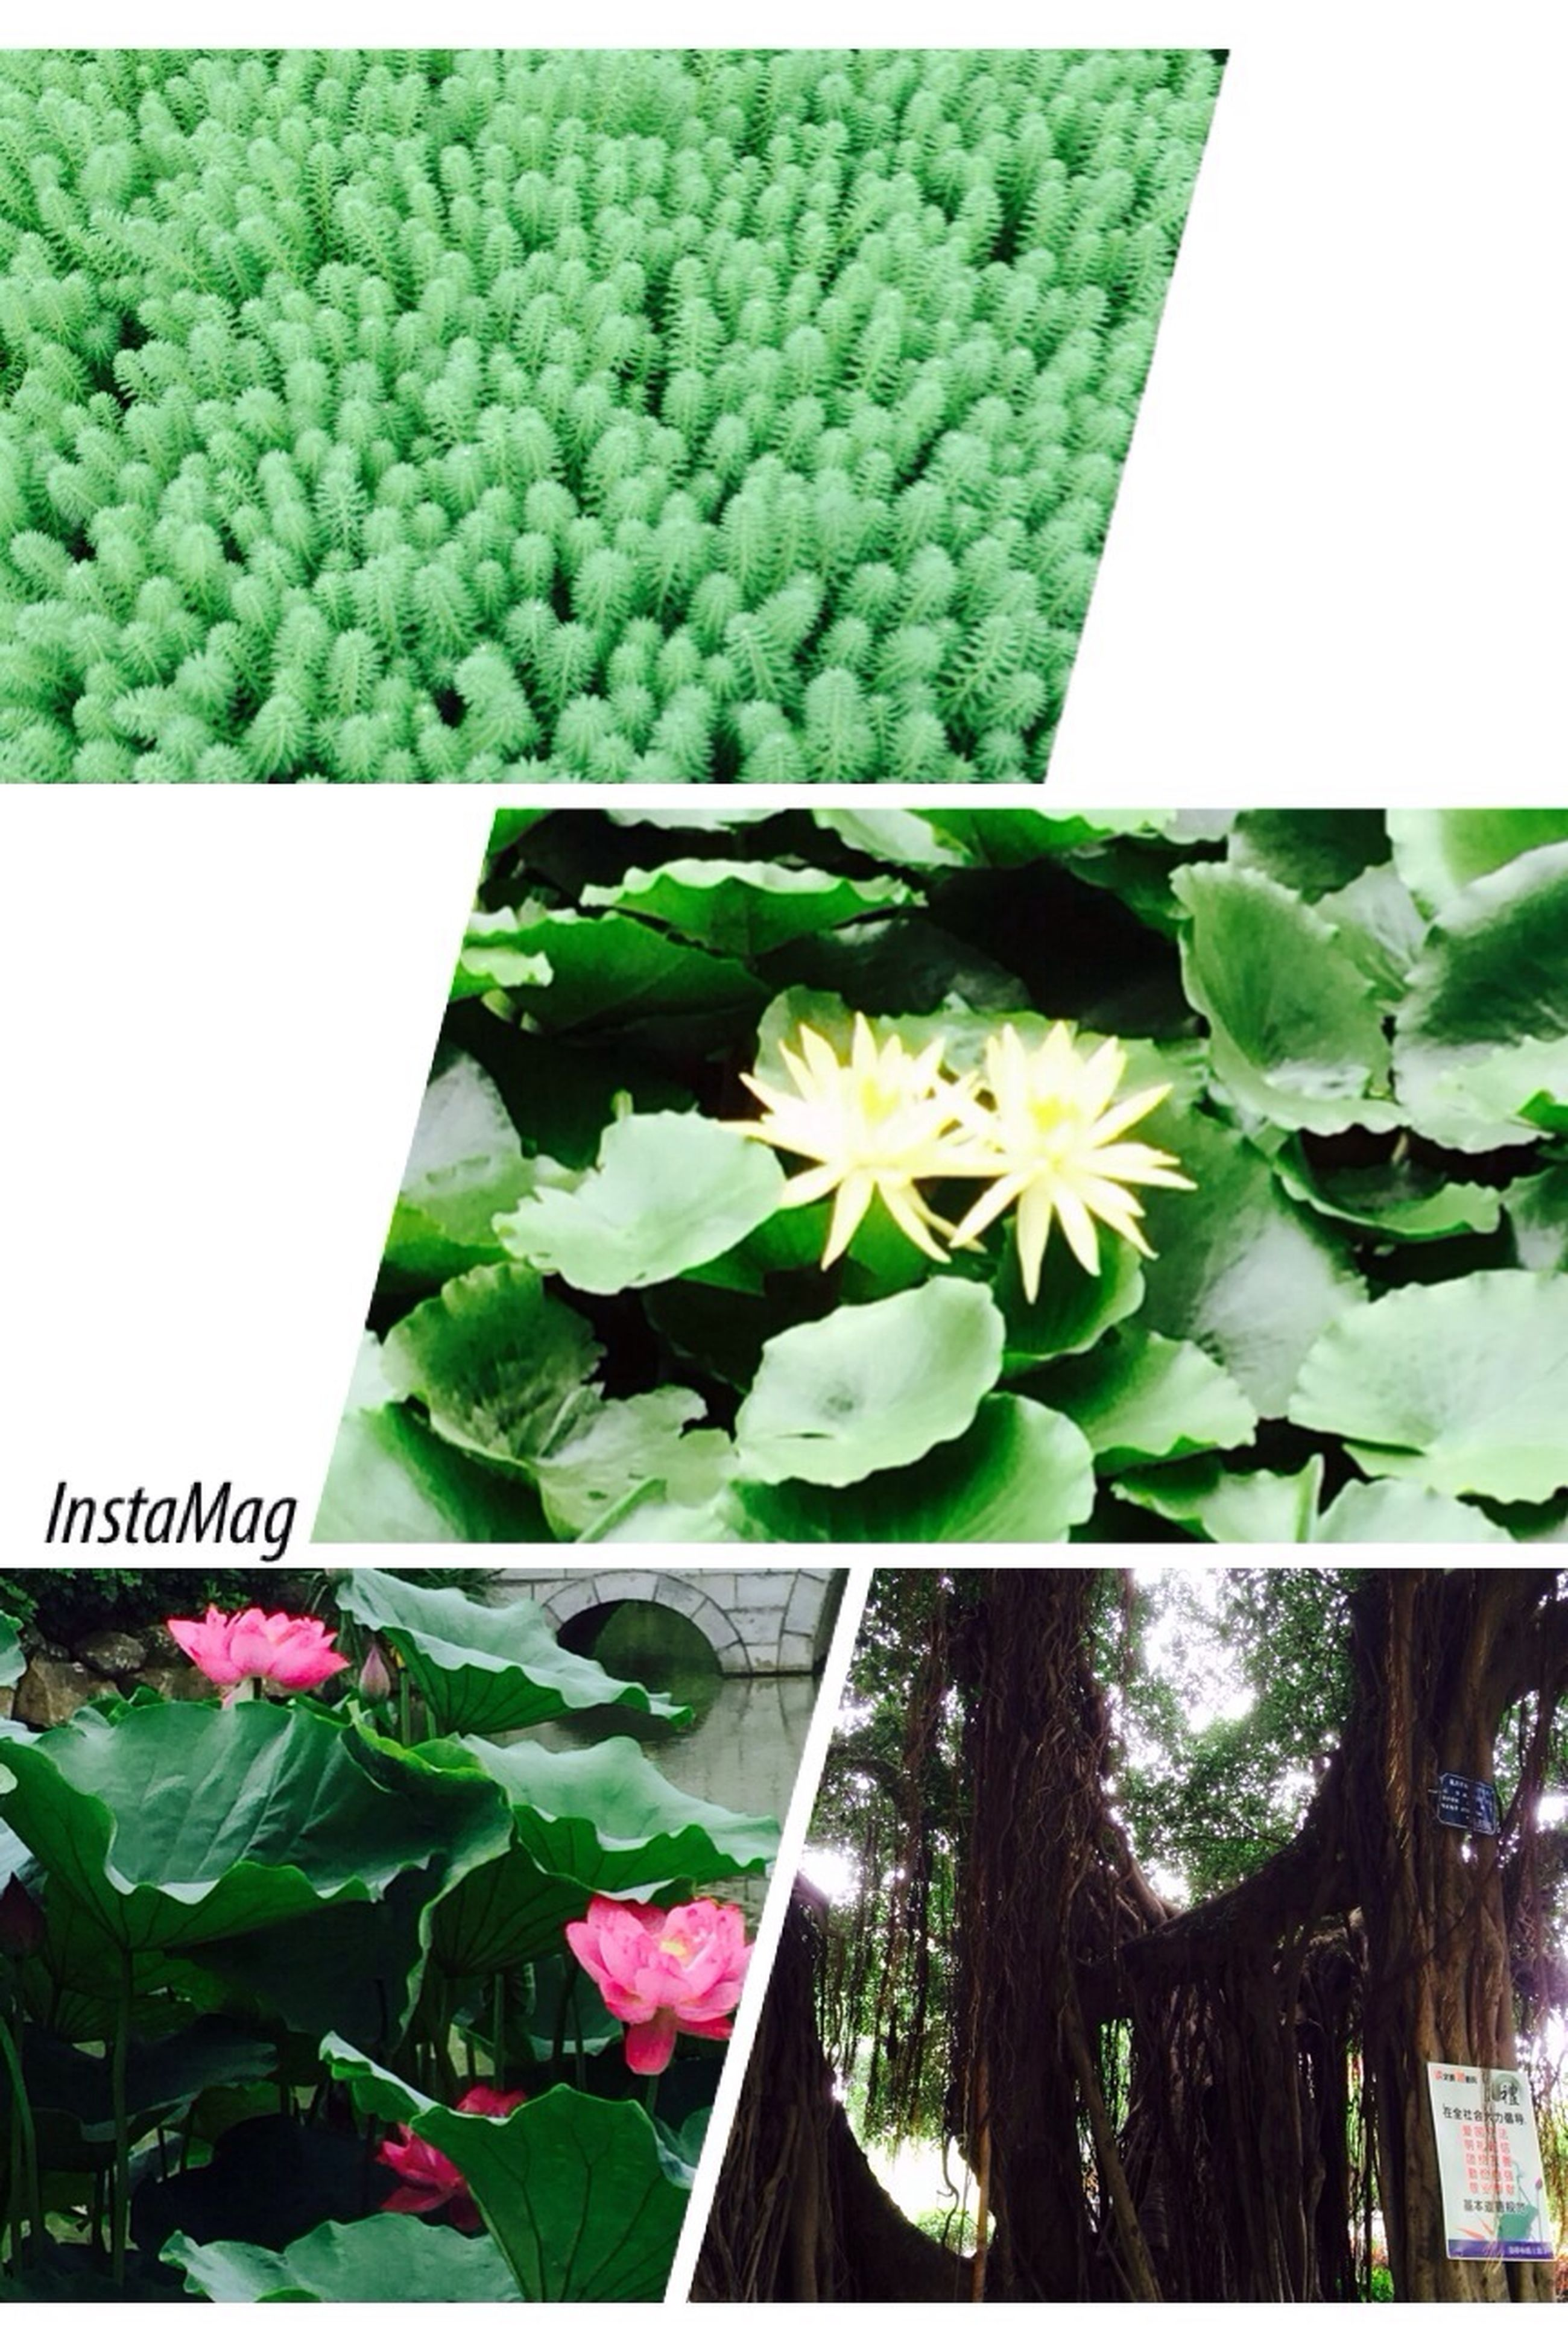 flower, freshness, growth, fragility, leaf, green color, flower head, beauty in nature, close-up, plant, petal, nature, white color, high angle view, green, no people, day, potted plant, blooming, text